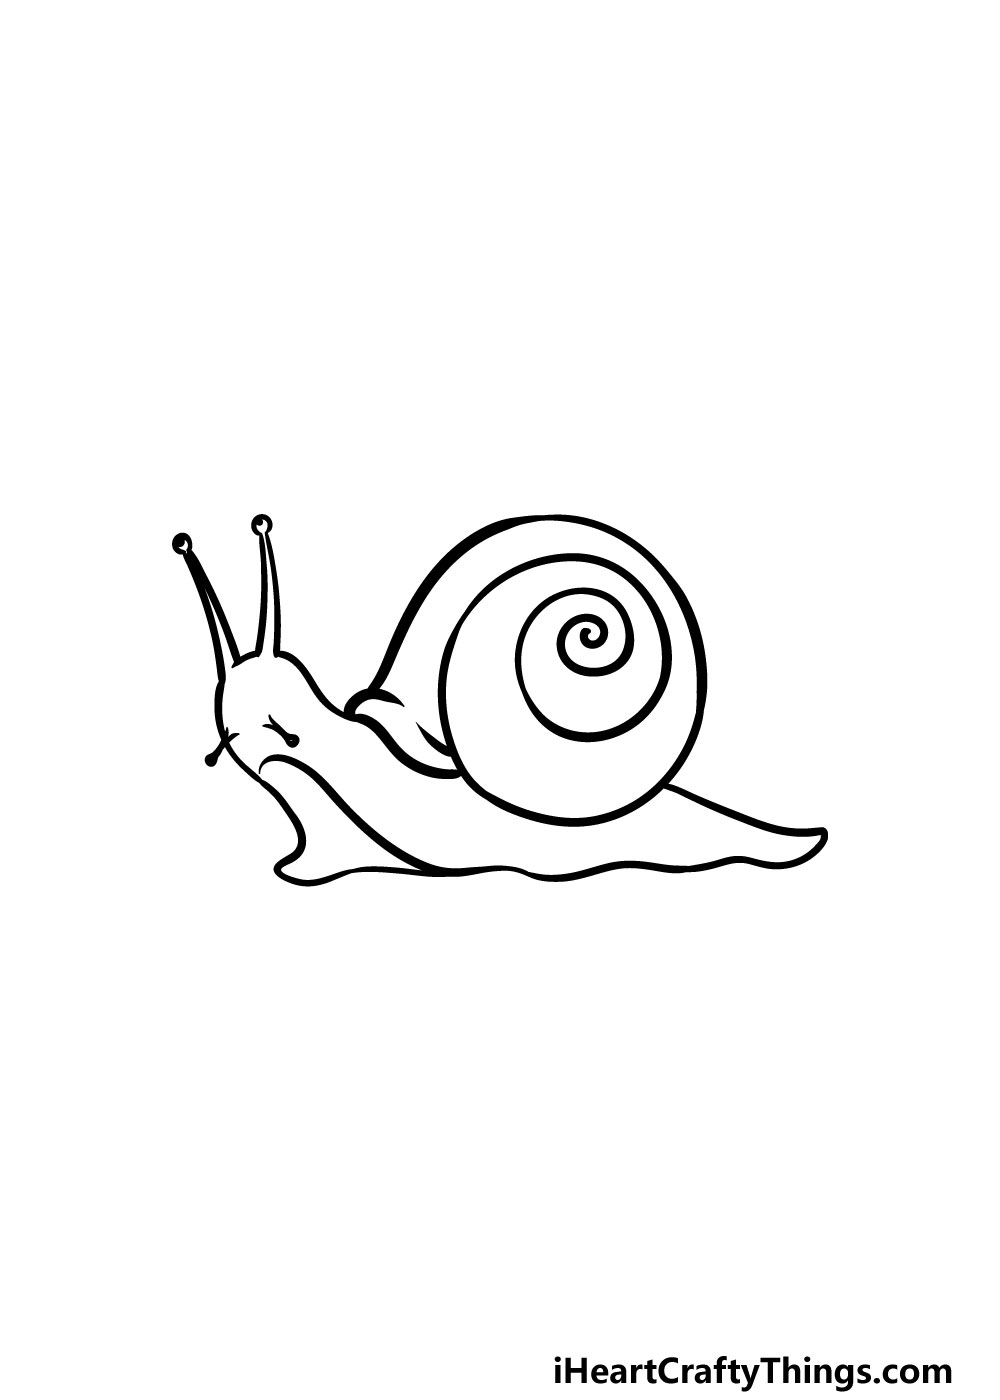 drawing a snail step 6